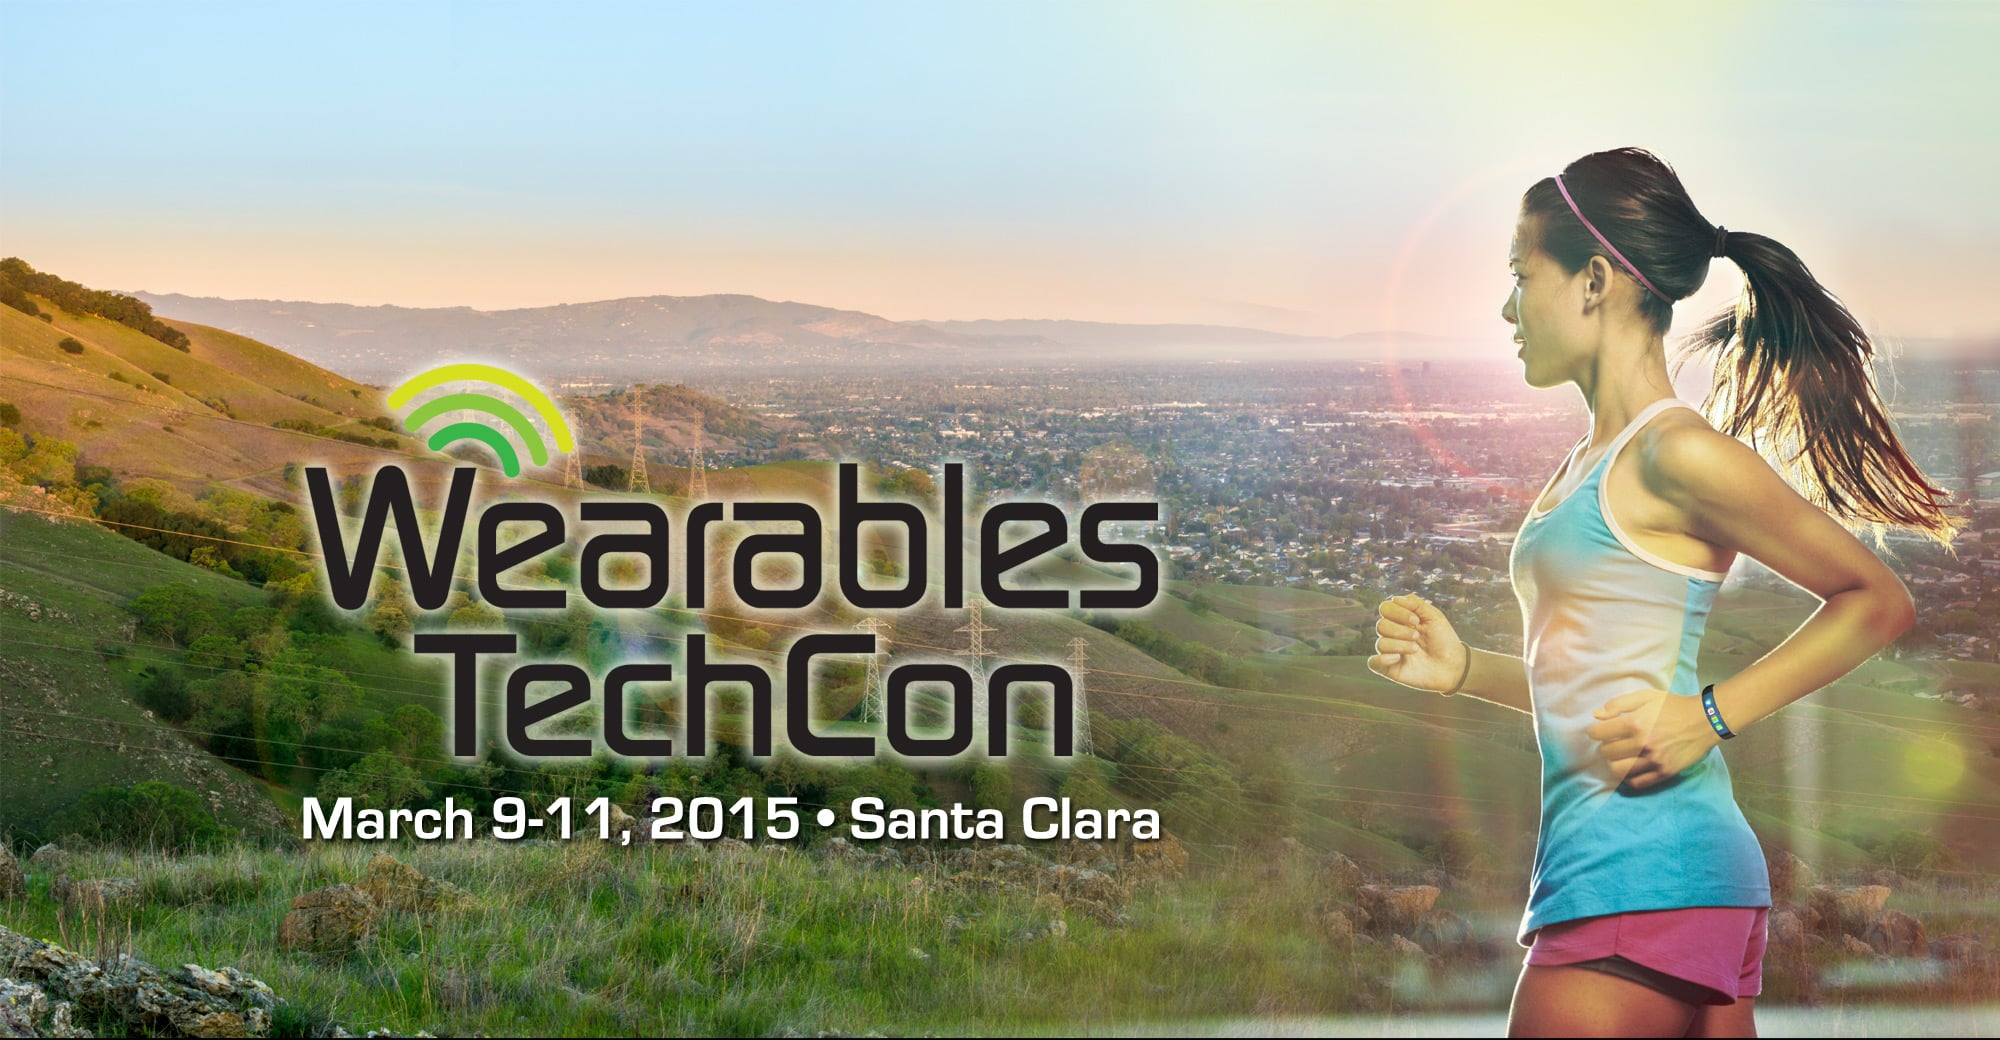 wearables_tech_con